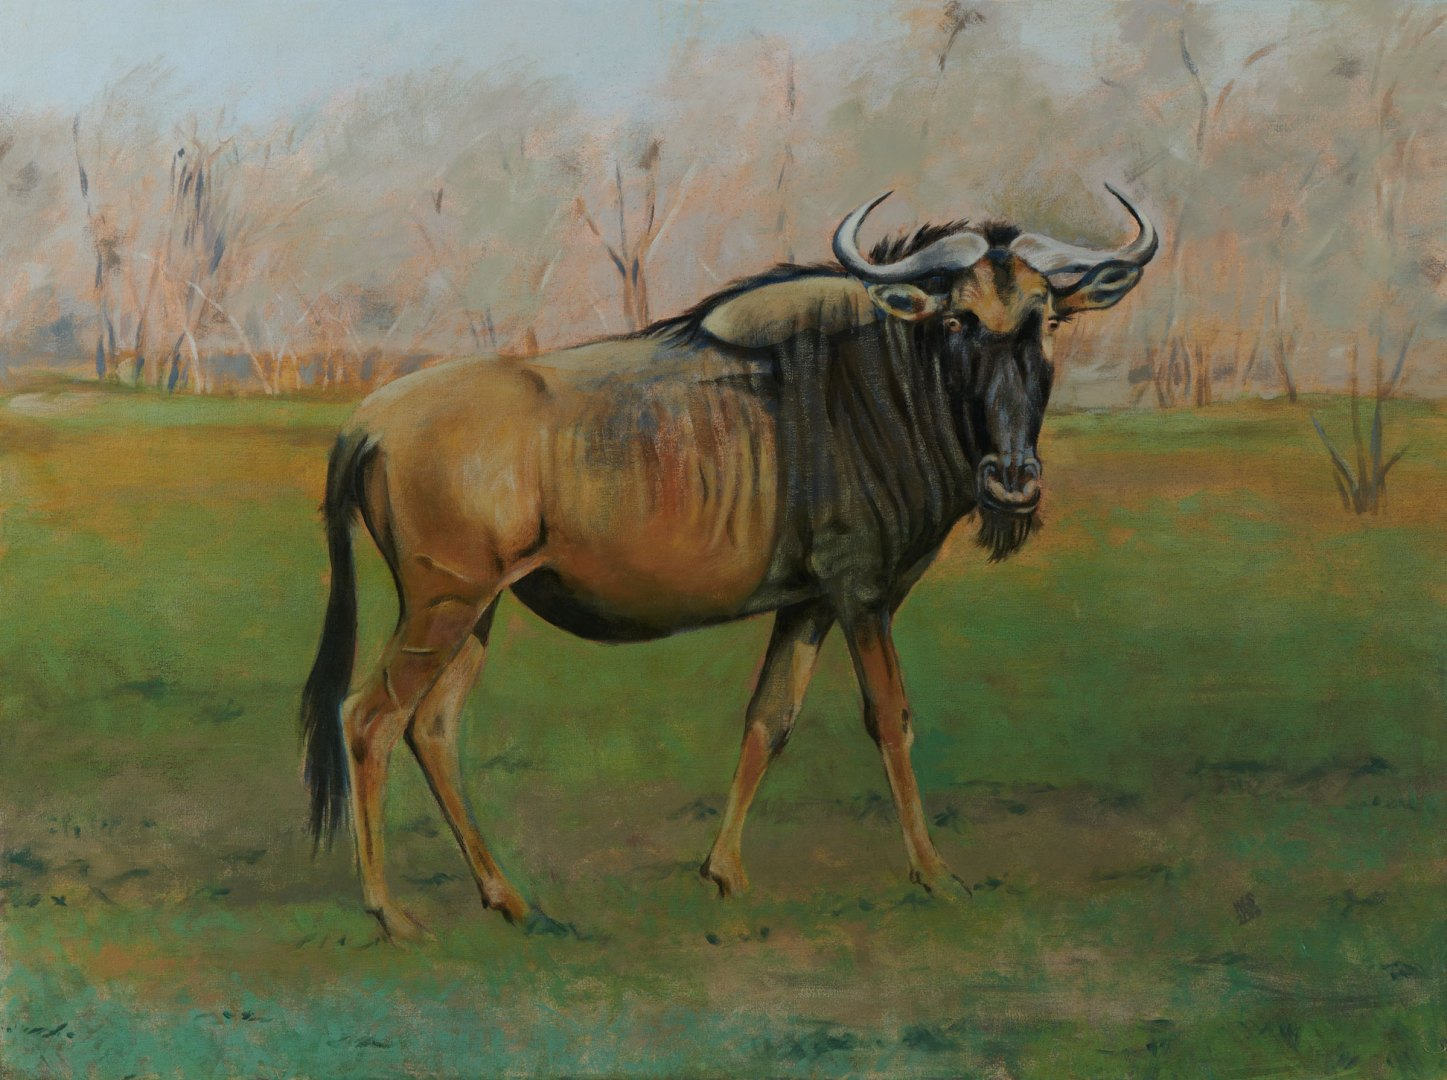 Painting of a Blue wildebeest, acrylic on canvas, 110 cm x 76 cm